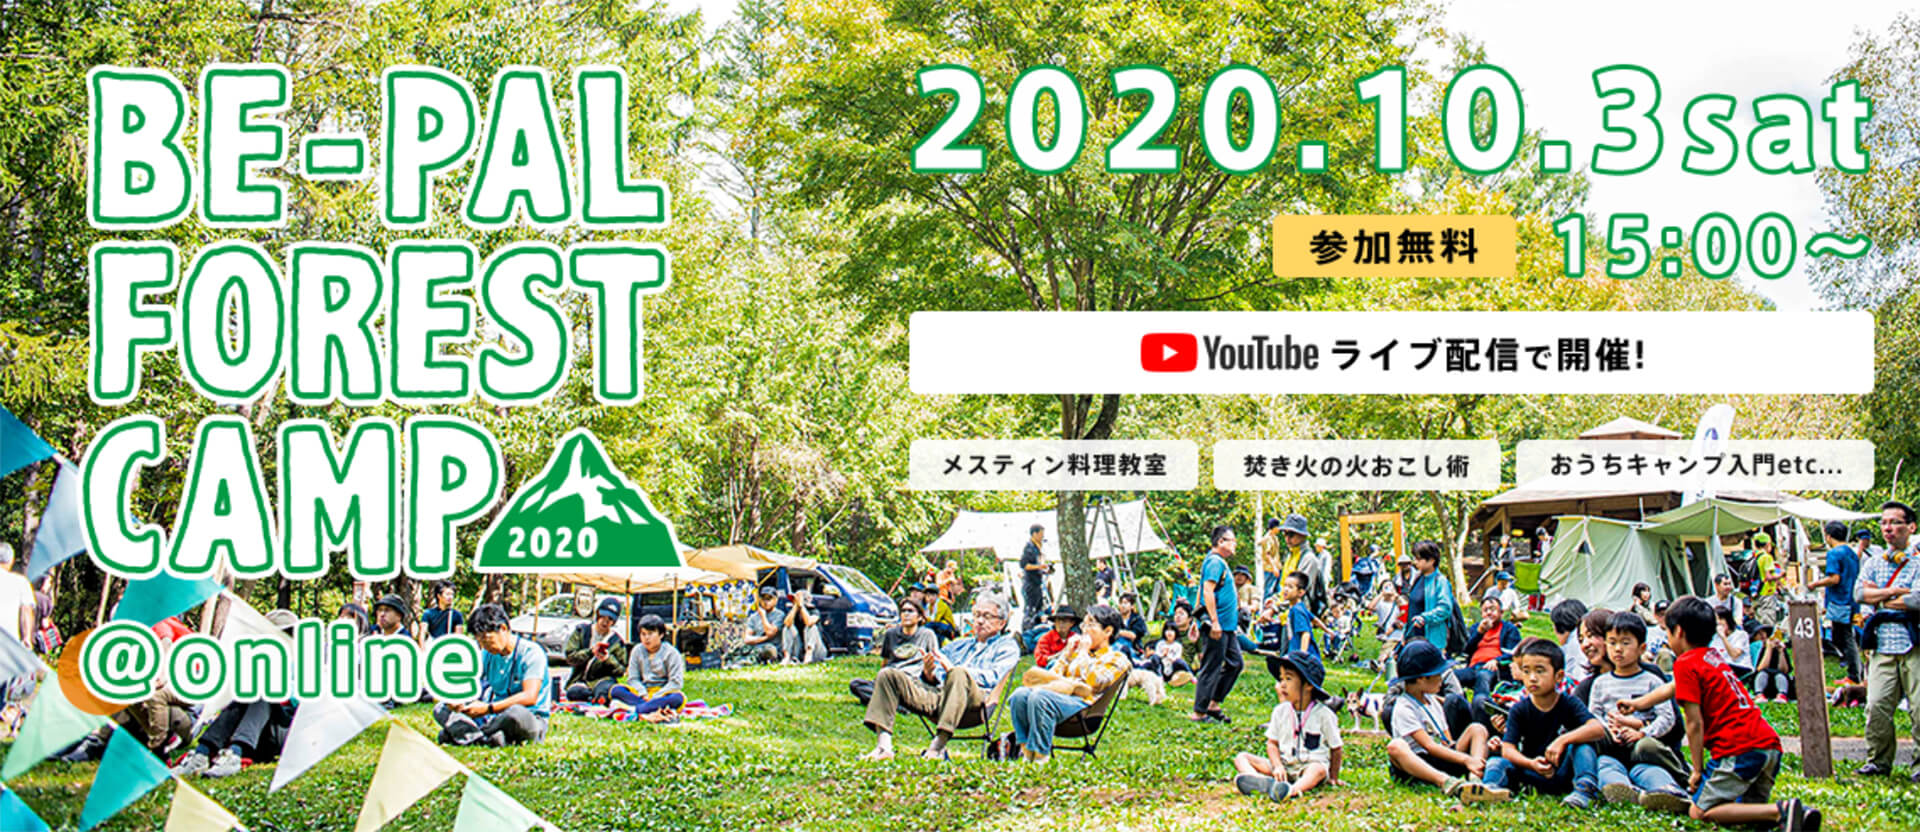 BE-PAL FOREST CAMP2020 @online